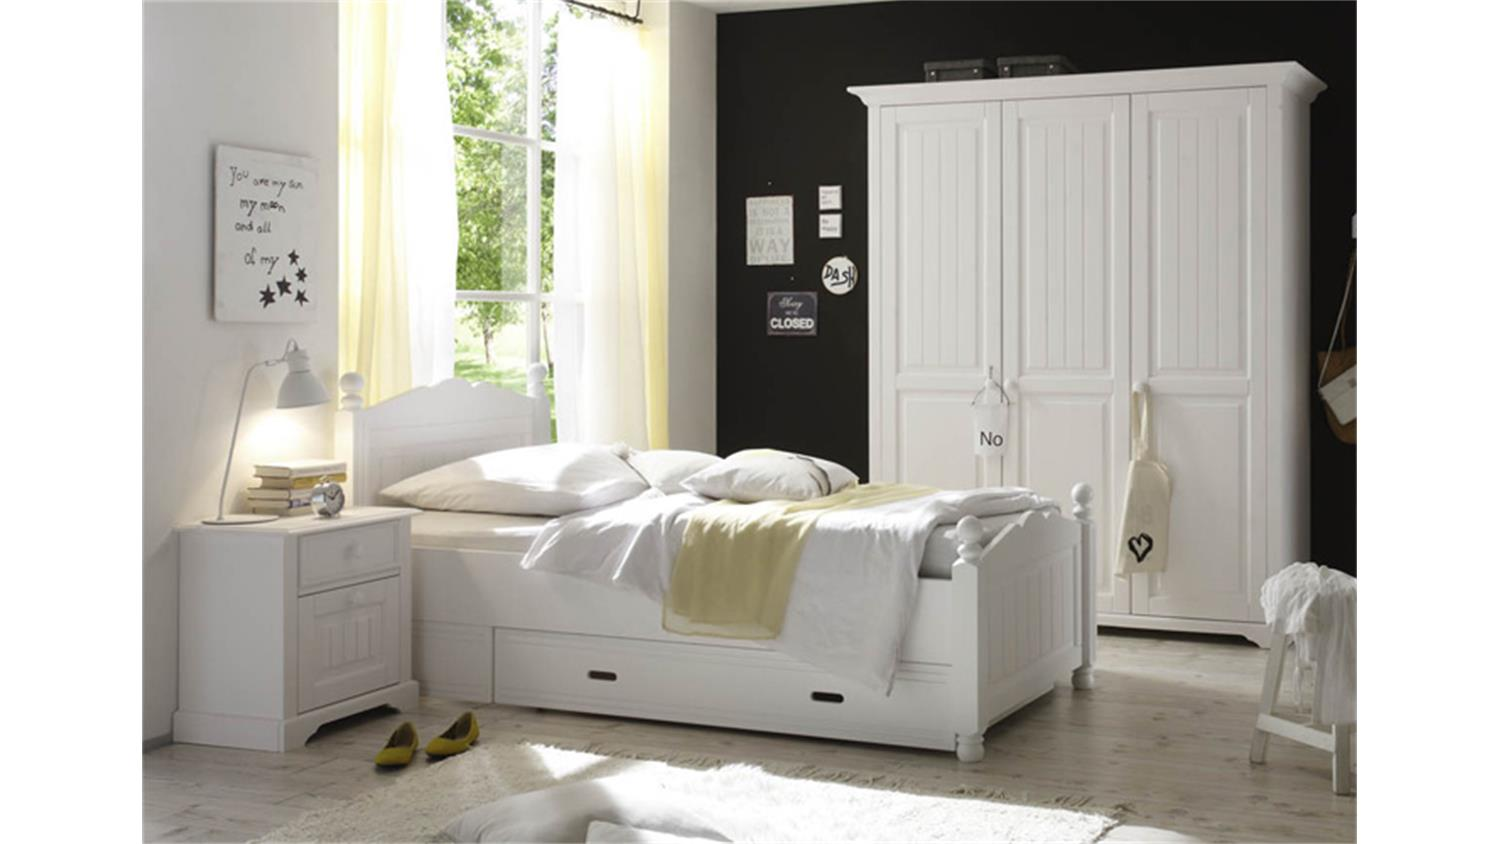 9 quadratmeter zimmer alles ber wohndesign und m belideen. Black Bedroom Furniture Sets. Home Design Ideas